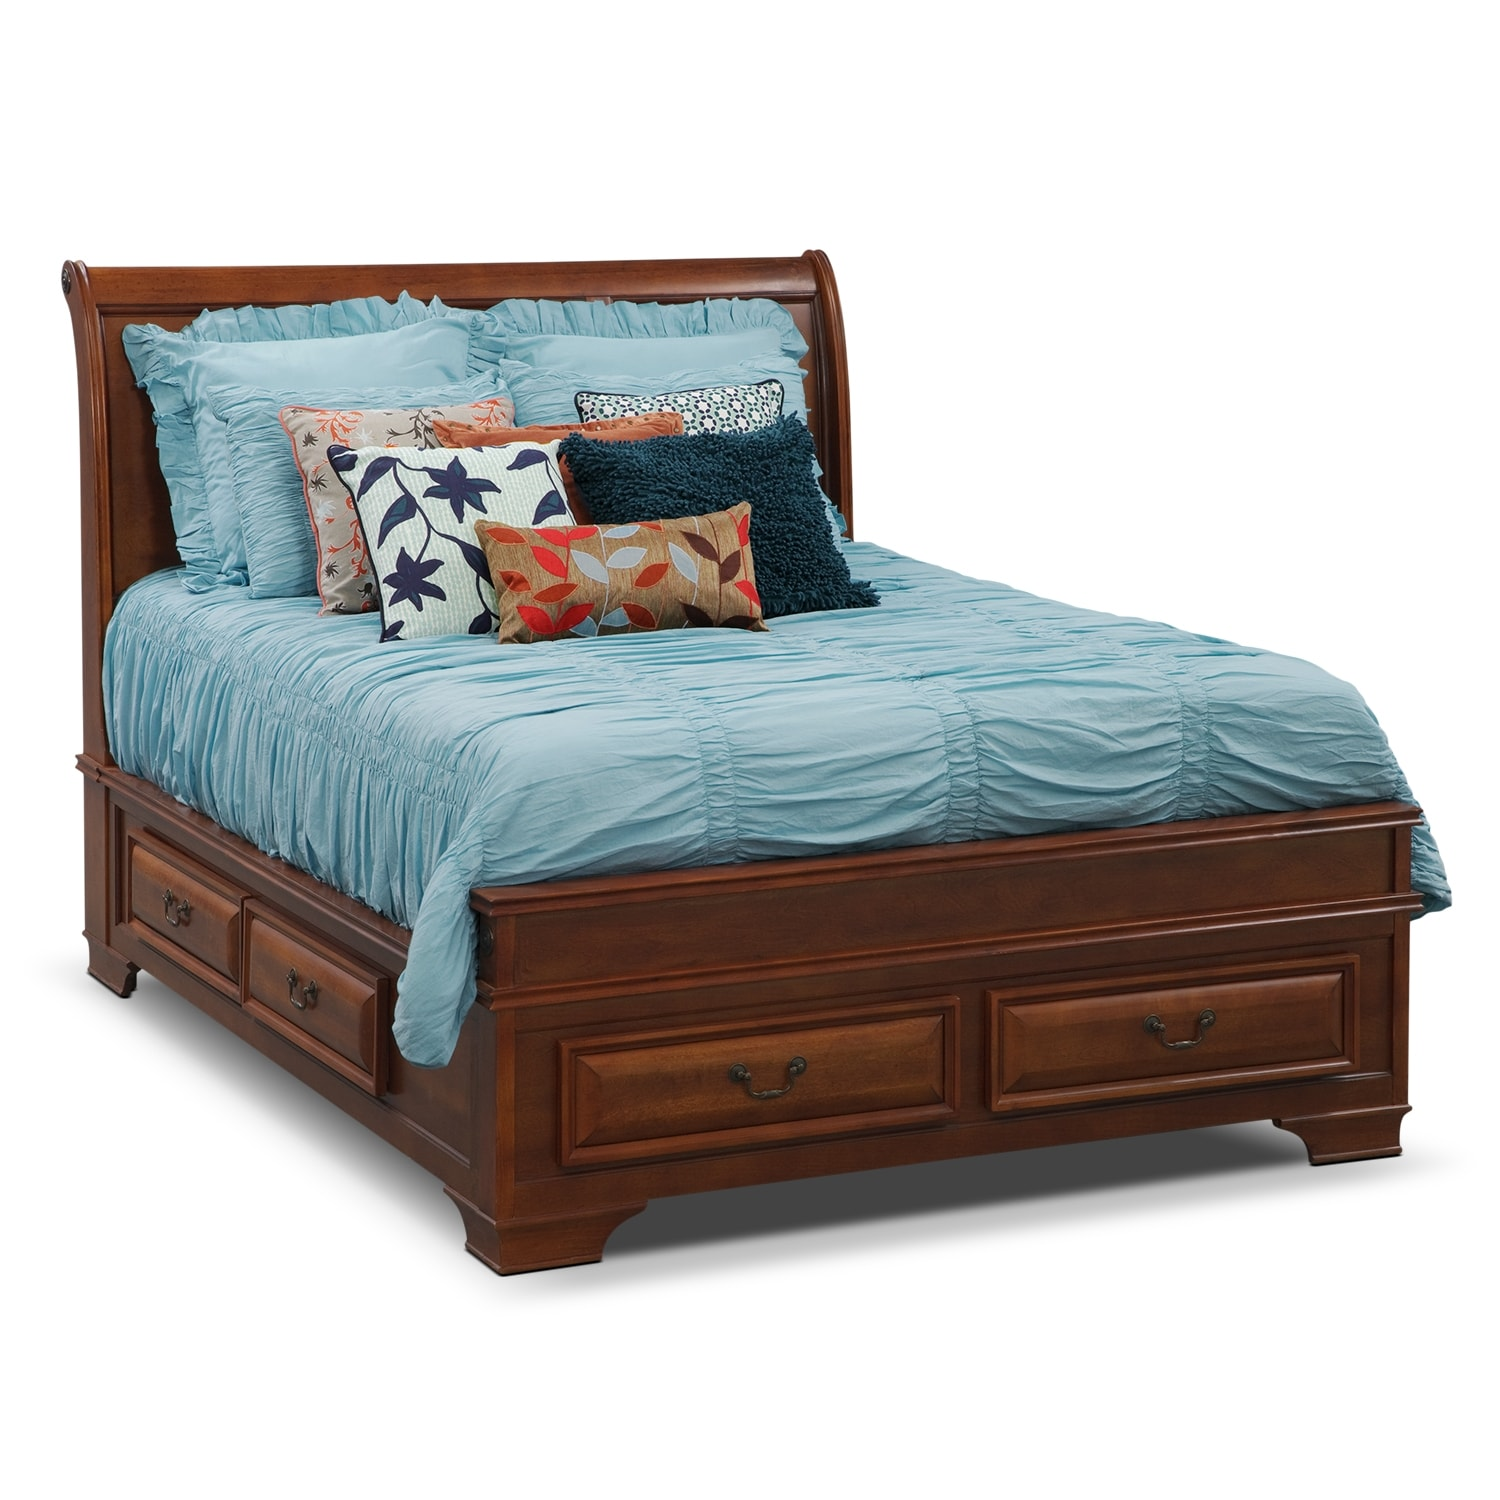 Accent and Occasional Furniture - Gillian III King Bedding Set